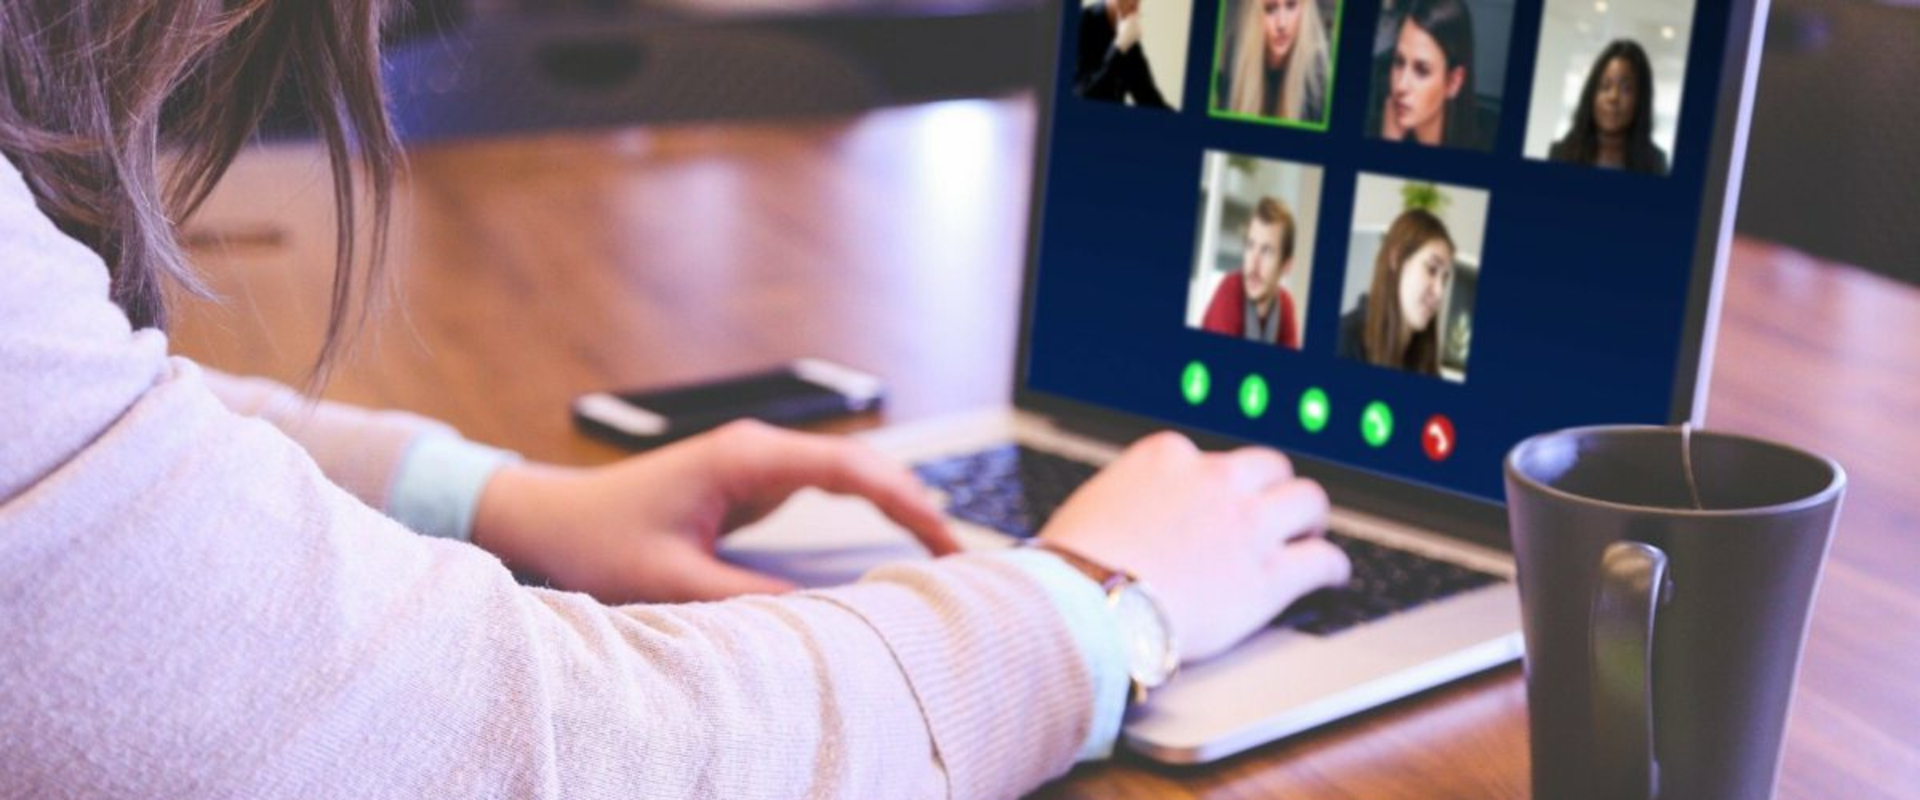 how does a vpn give you access to and secure your voip calls?